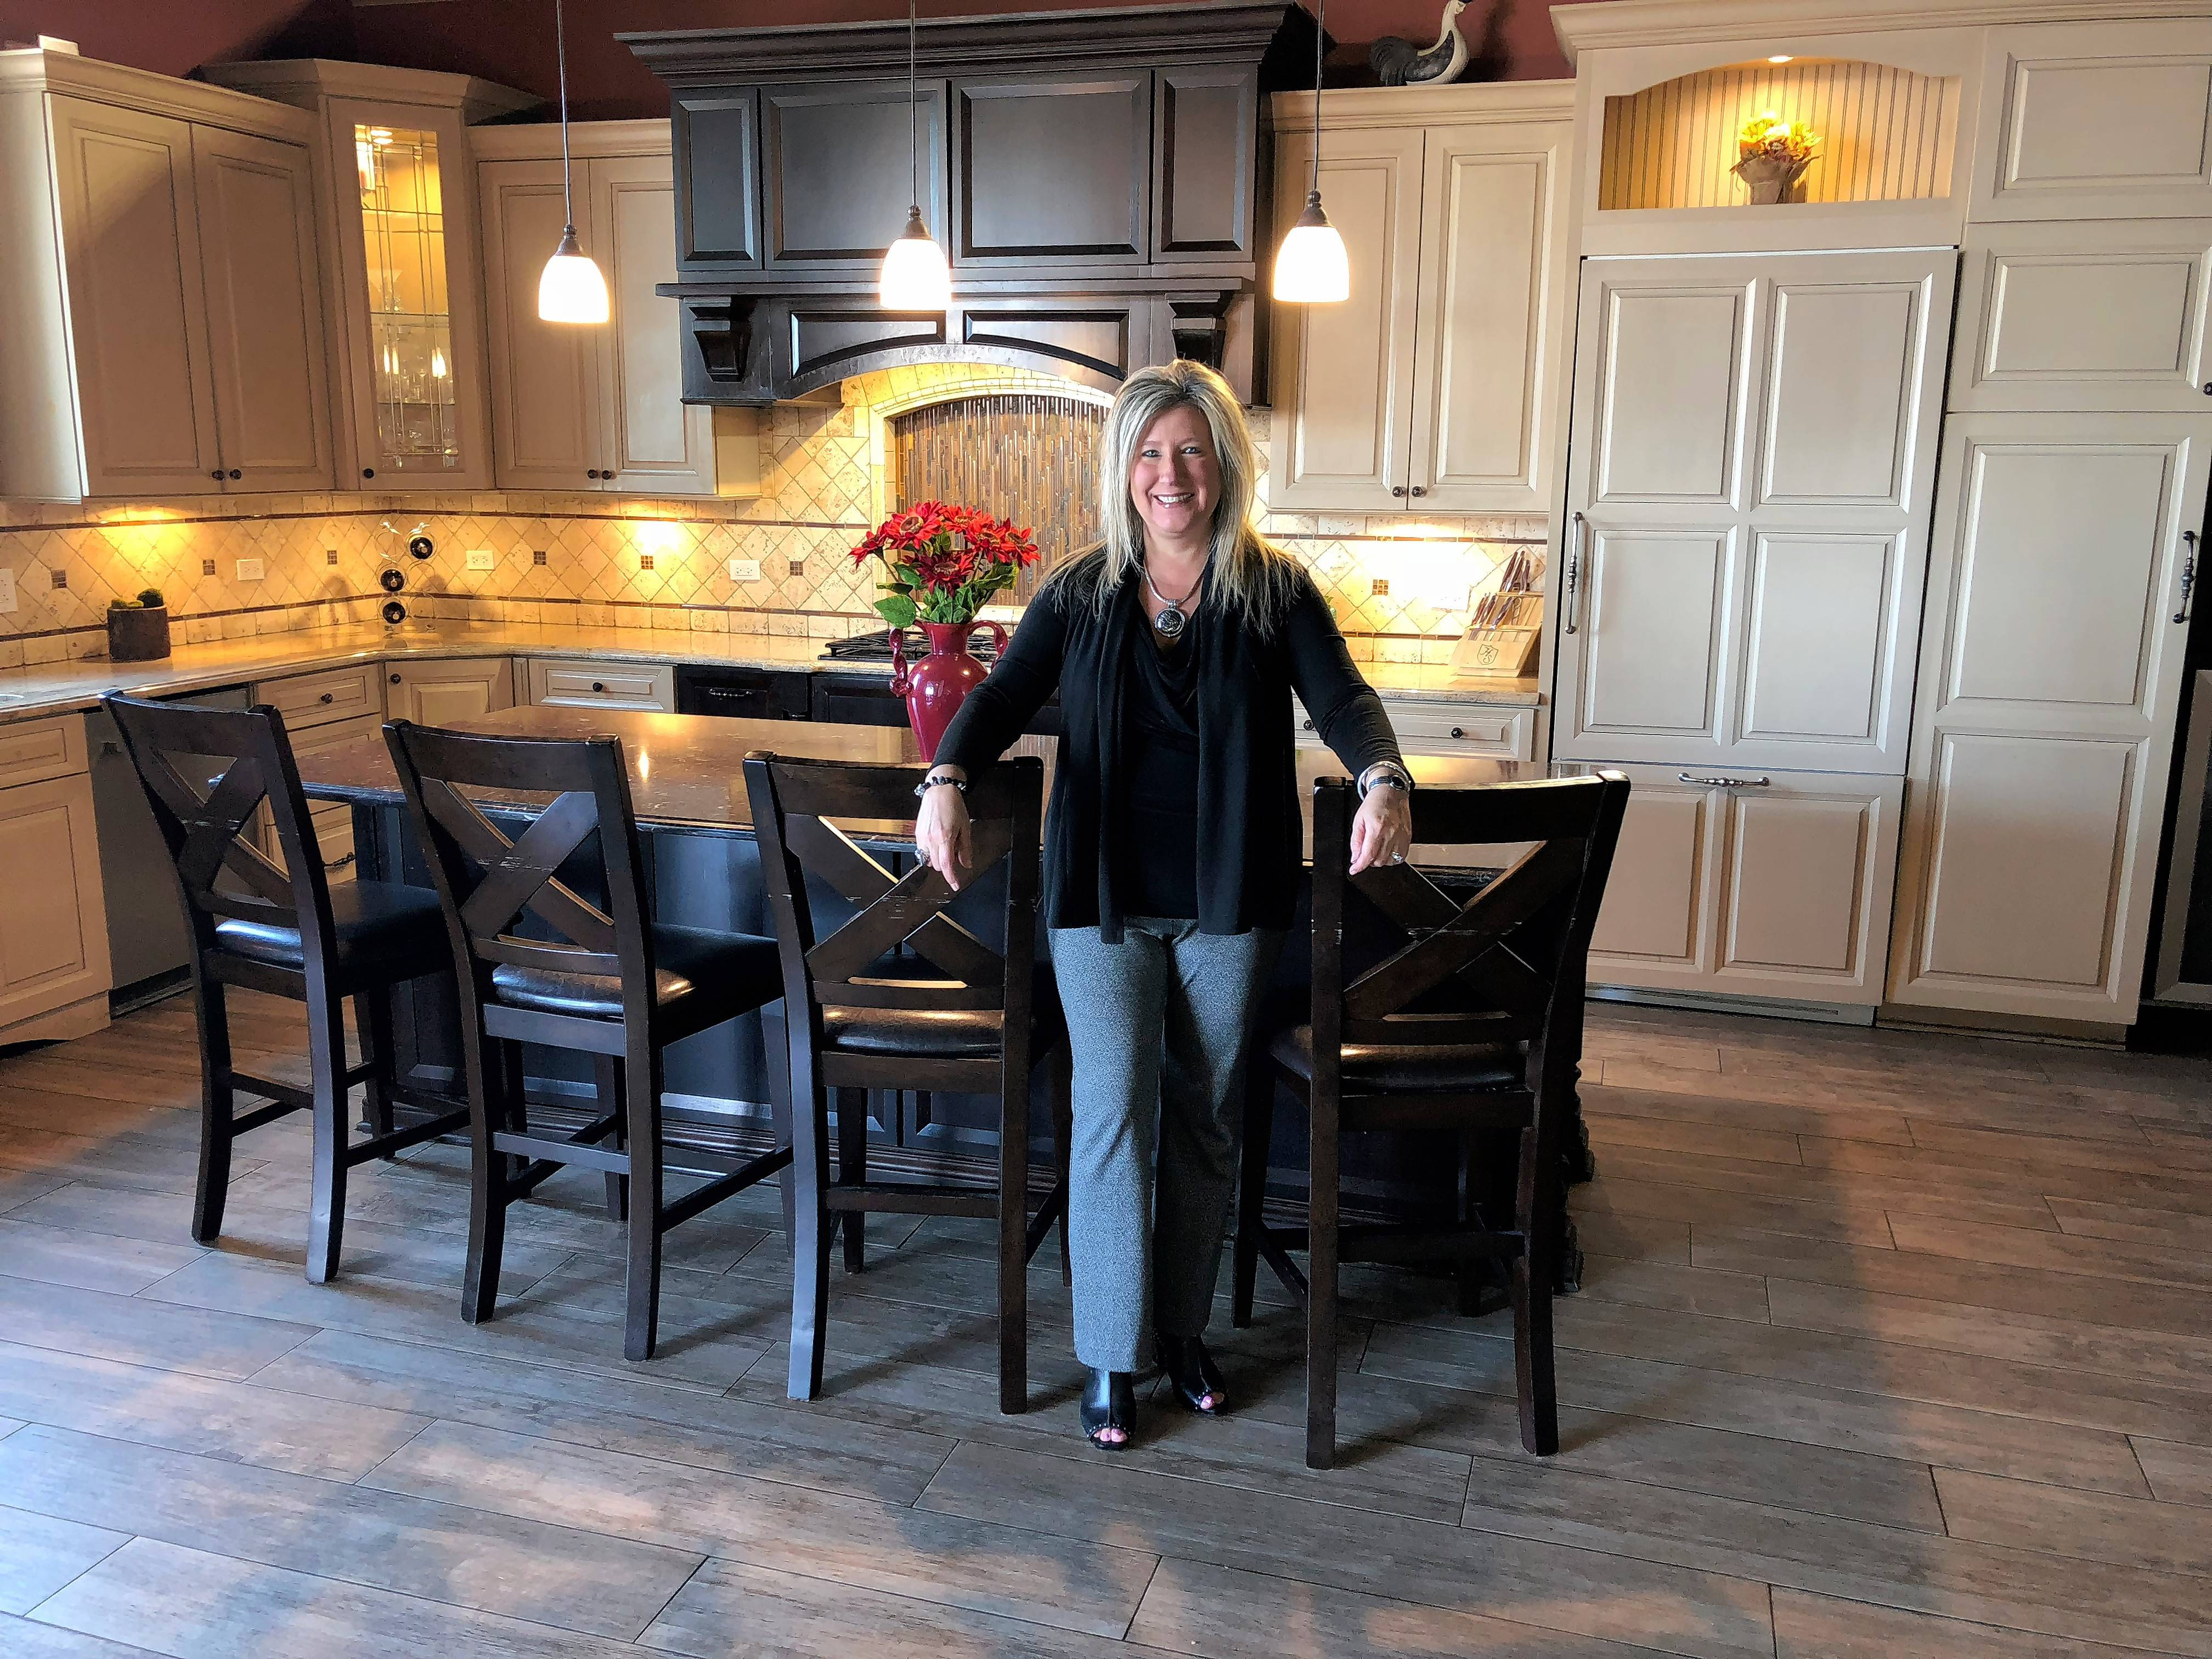 Tara Soderstrom, marketing and client relations manager for DESIGNfirst Builders, says about 40 percent of the jobs the company completes are kitchen renovations.